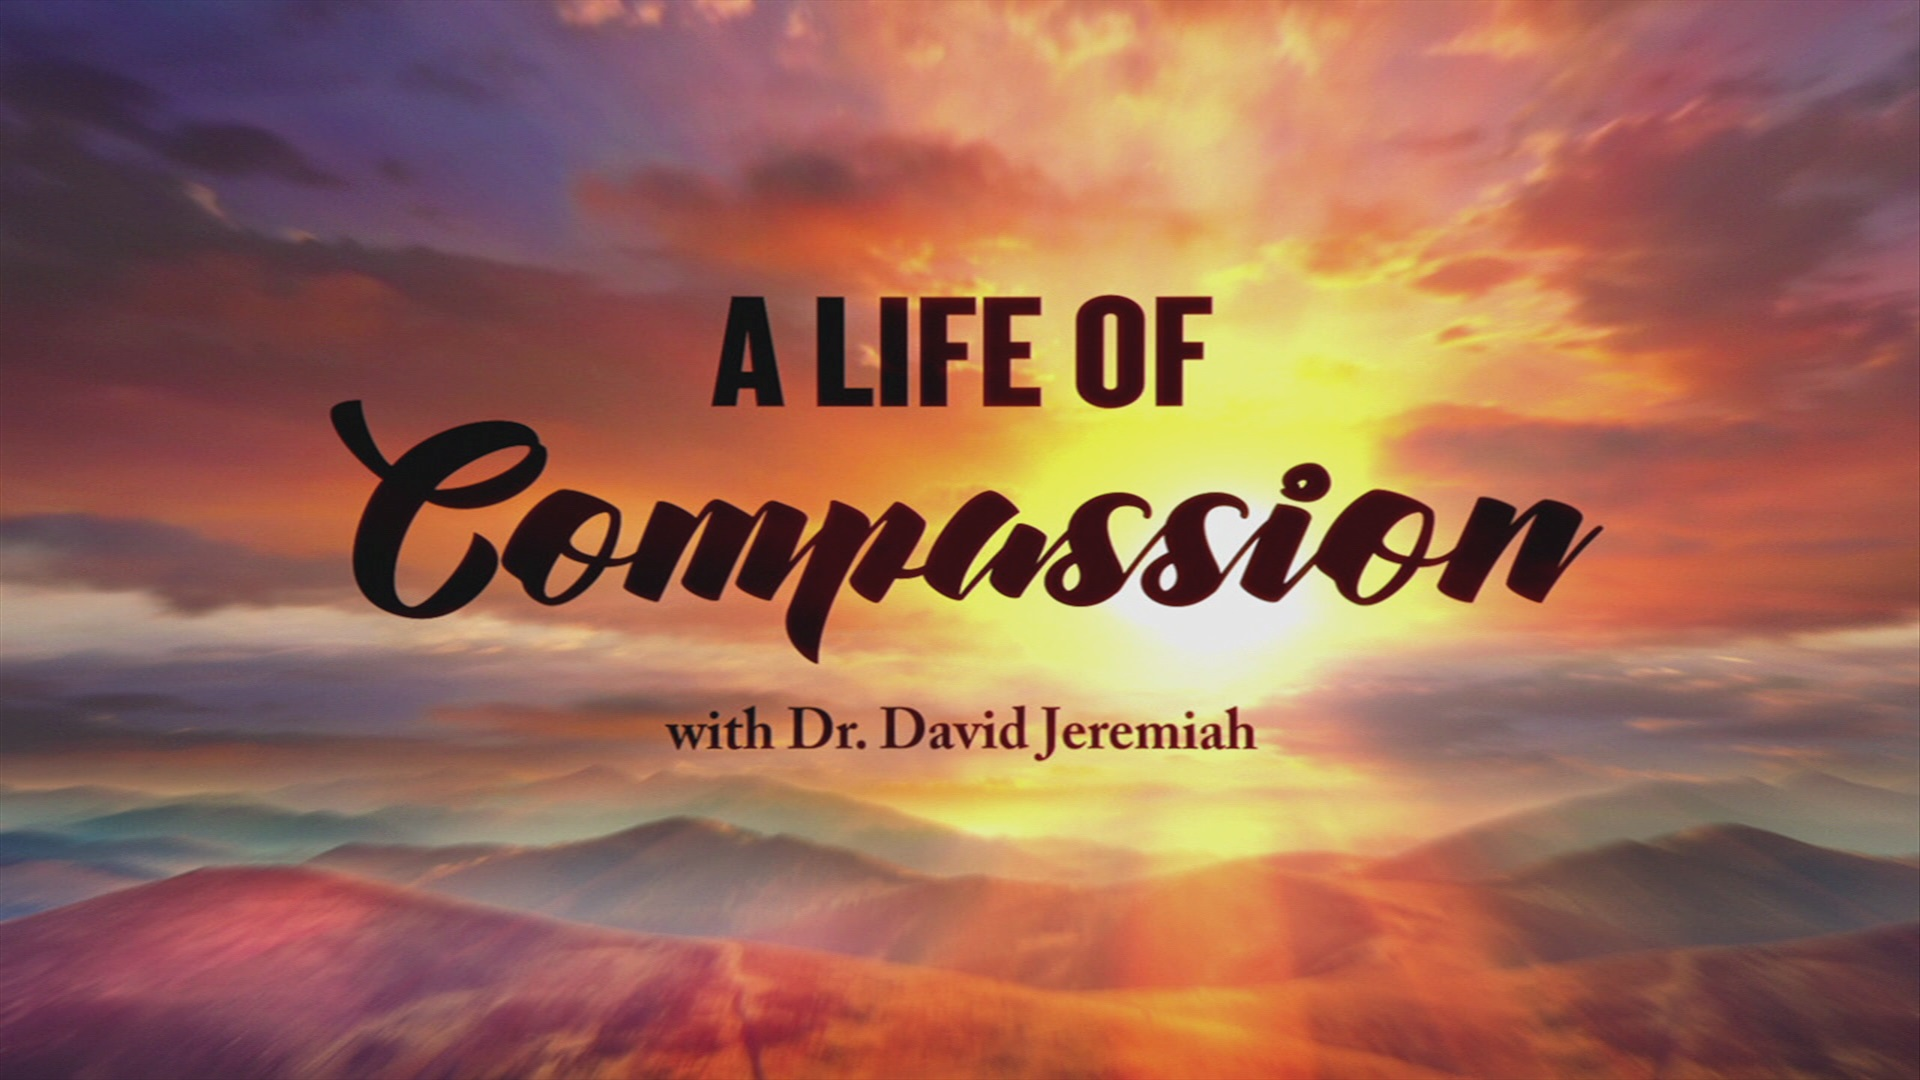 A Life of Compassion